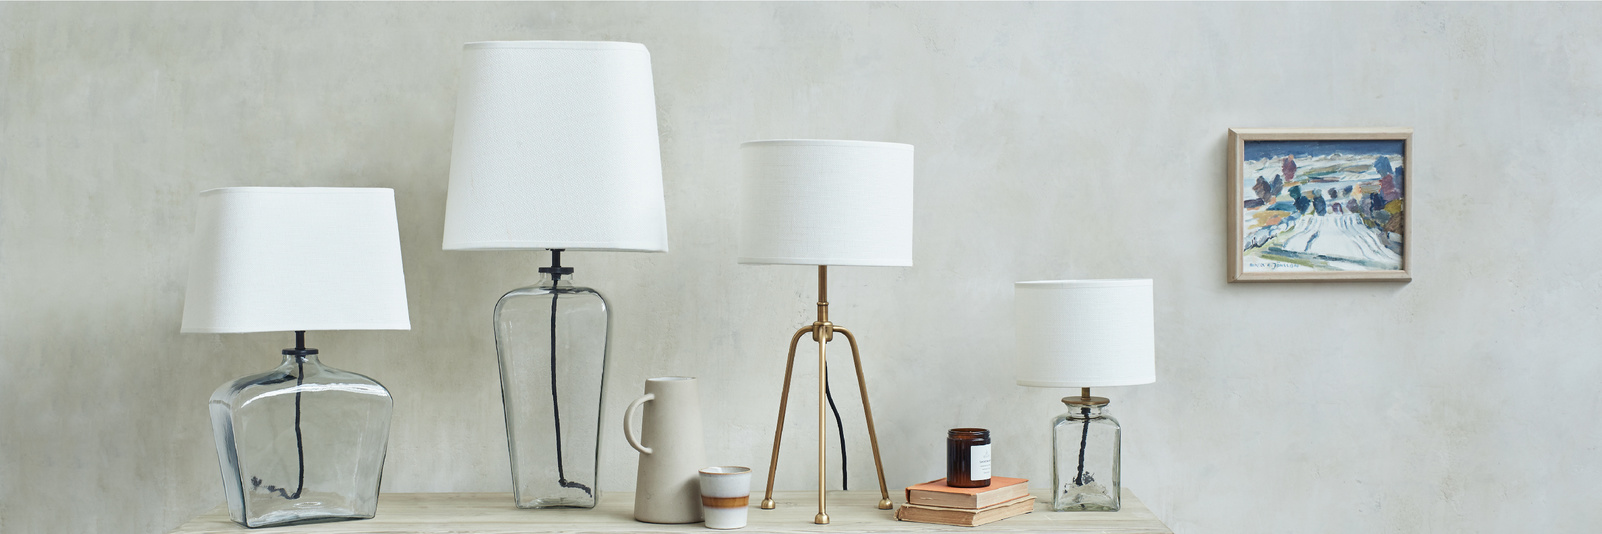 Table lamp range